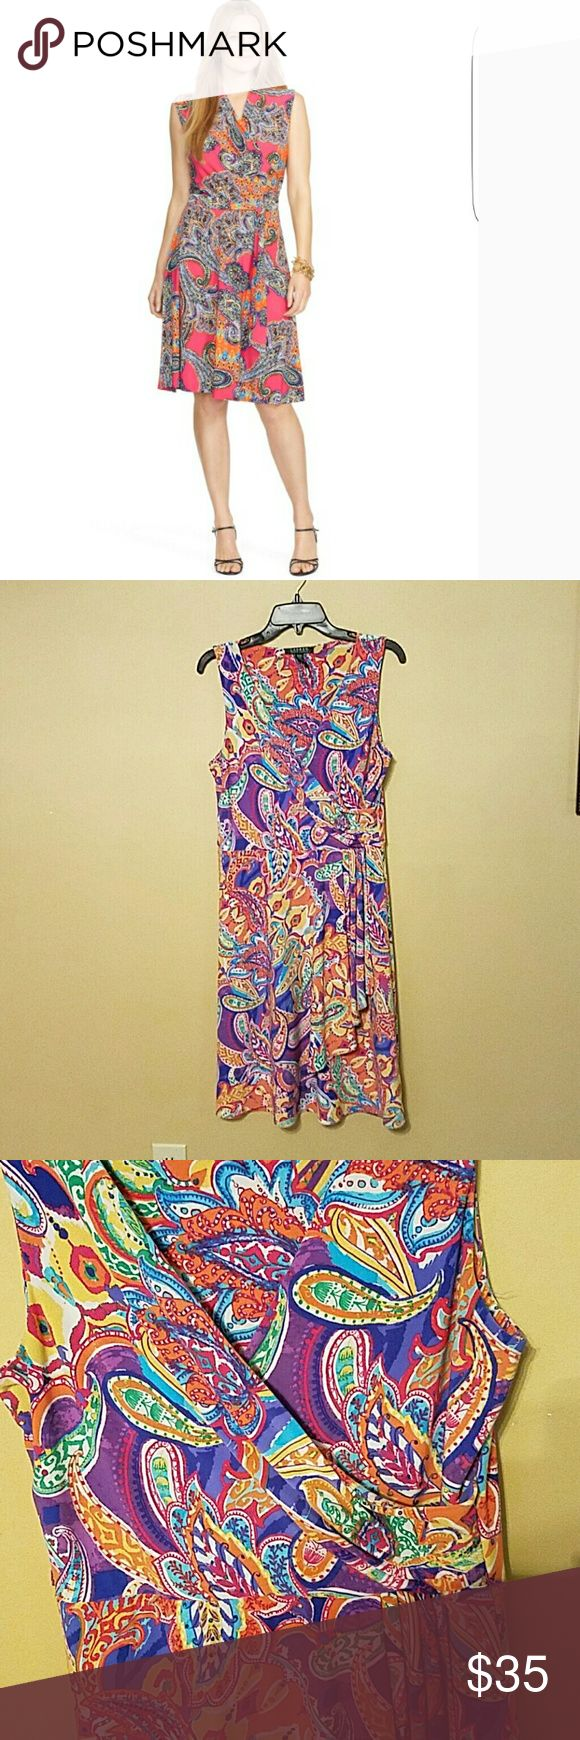 *BOGO* Lauren Ralph Lauren Paisley Dress Lauren Ralph Lauren Paisley Dress  Purple, Yellow, Blue, Pink, Orange Draped front Size M runs large ***BOGO THIS WEEKEND ONLY. ENDS MARCH 12. ADD 2 MARKED BOGO ITEMS TO A BUNDLE AND ONLY PAY FOR THE HIGHER PRICED ITEM*** Lauren Ralph Lauren Dresses